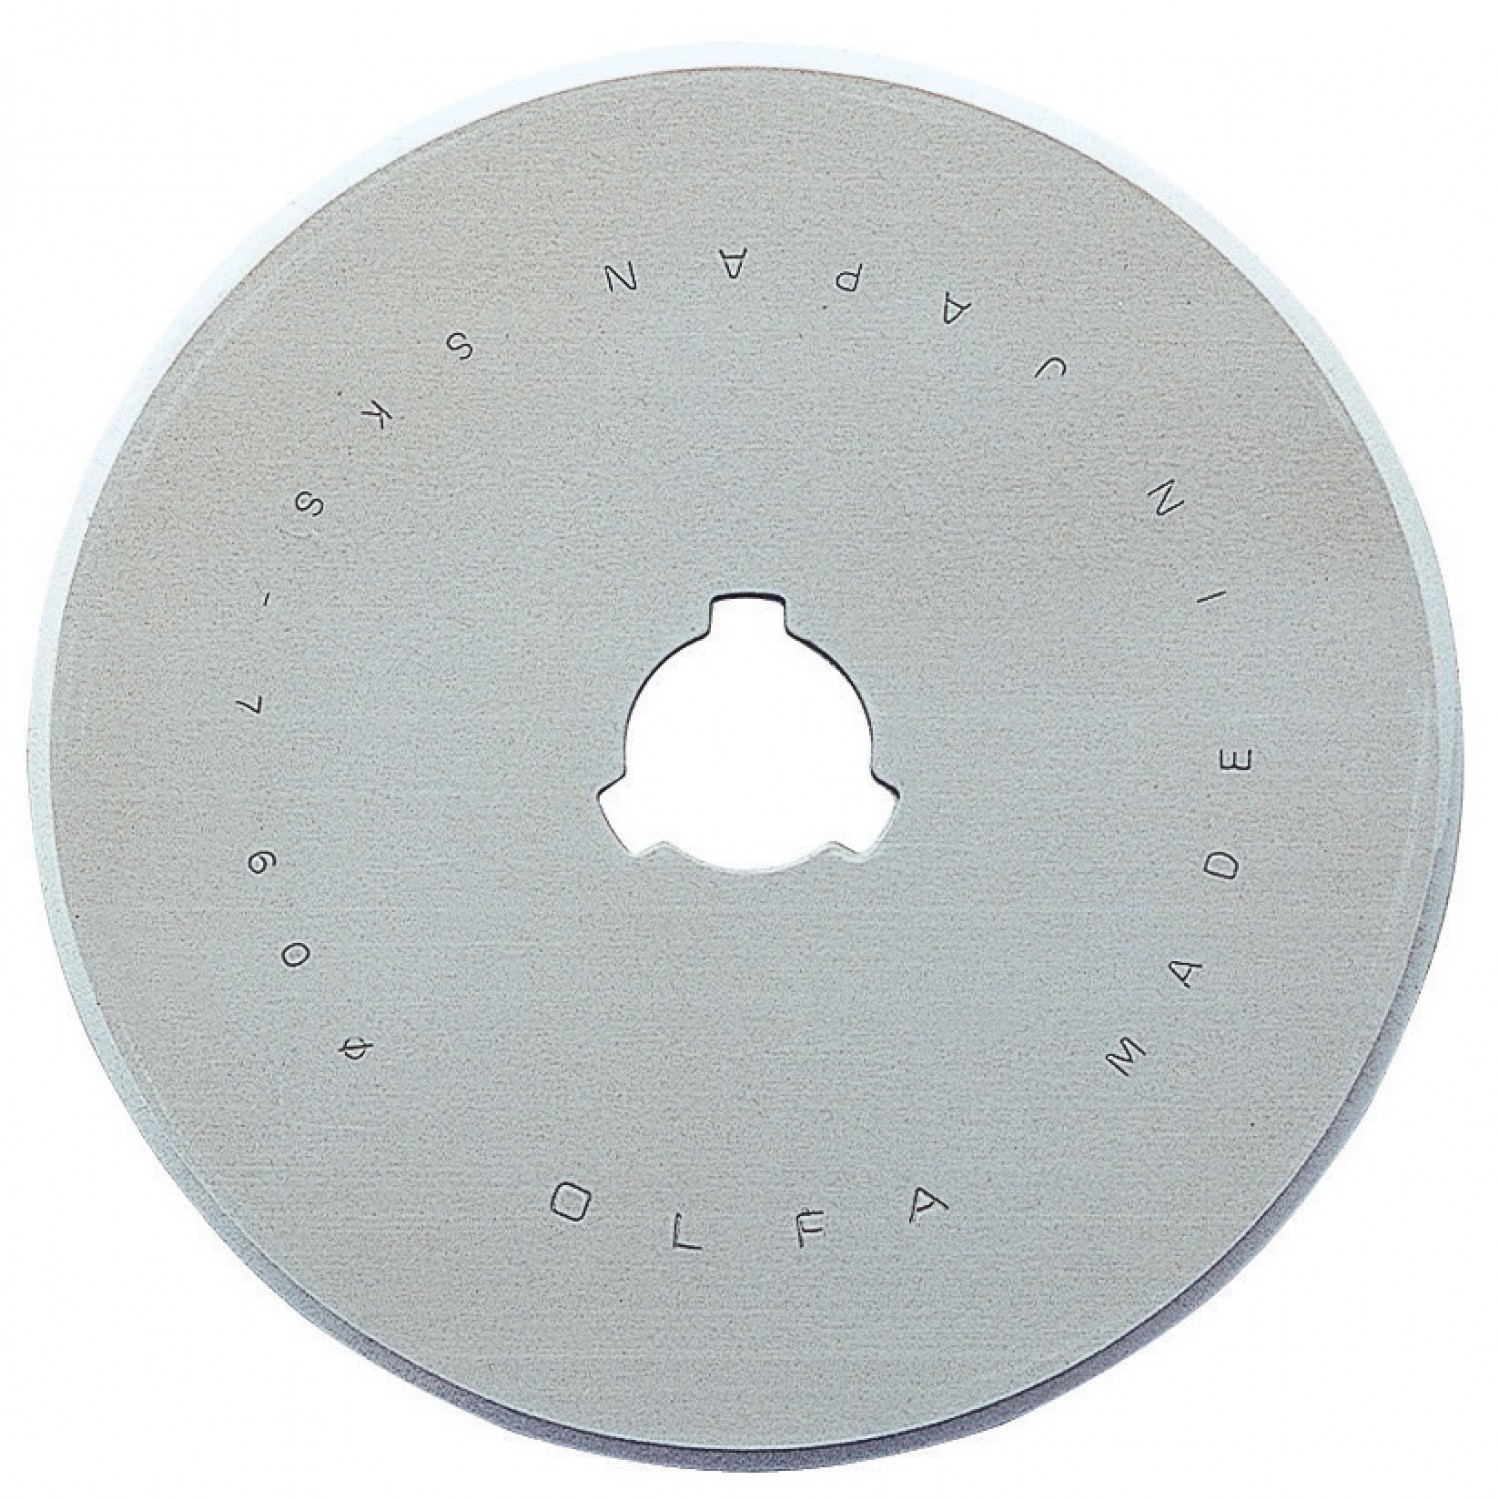 Olfa RB60-1 Rotary Blade 60mm